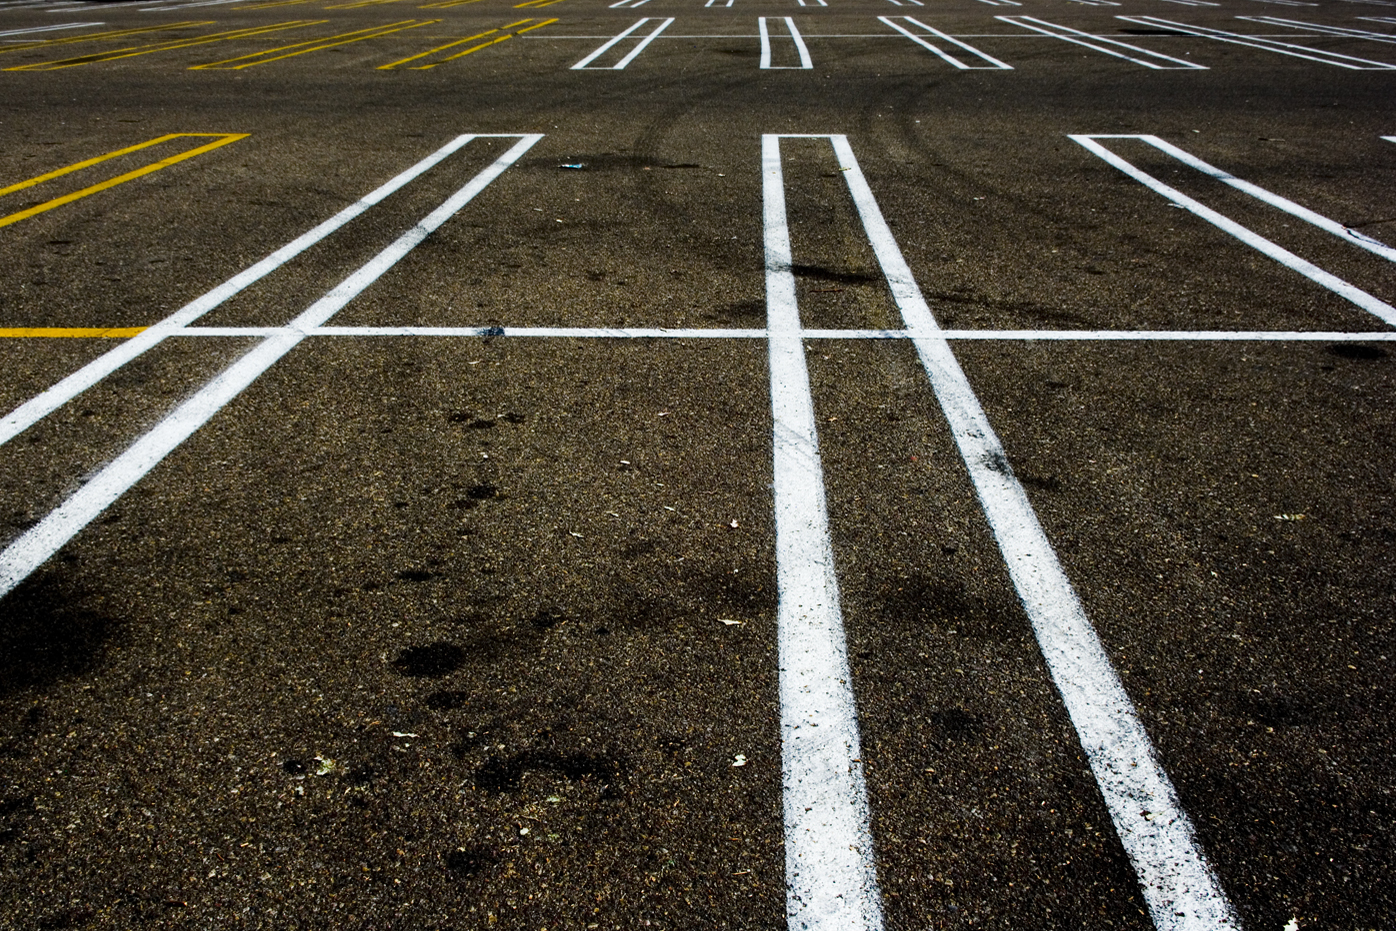 An empty parking lot: photo by Radcliffe Dacanay on Flickr.